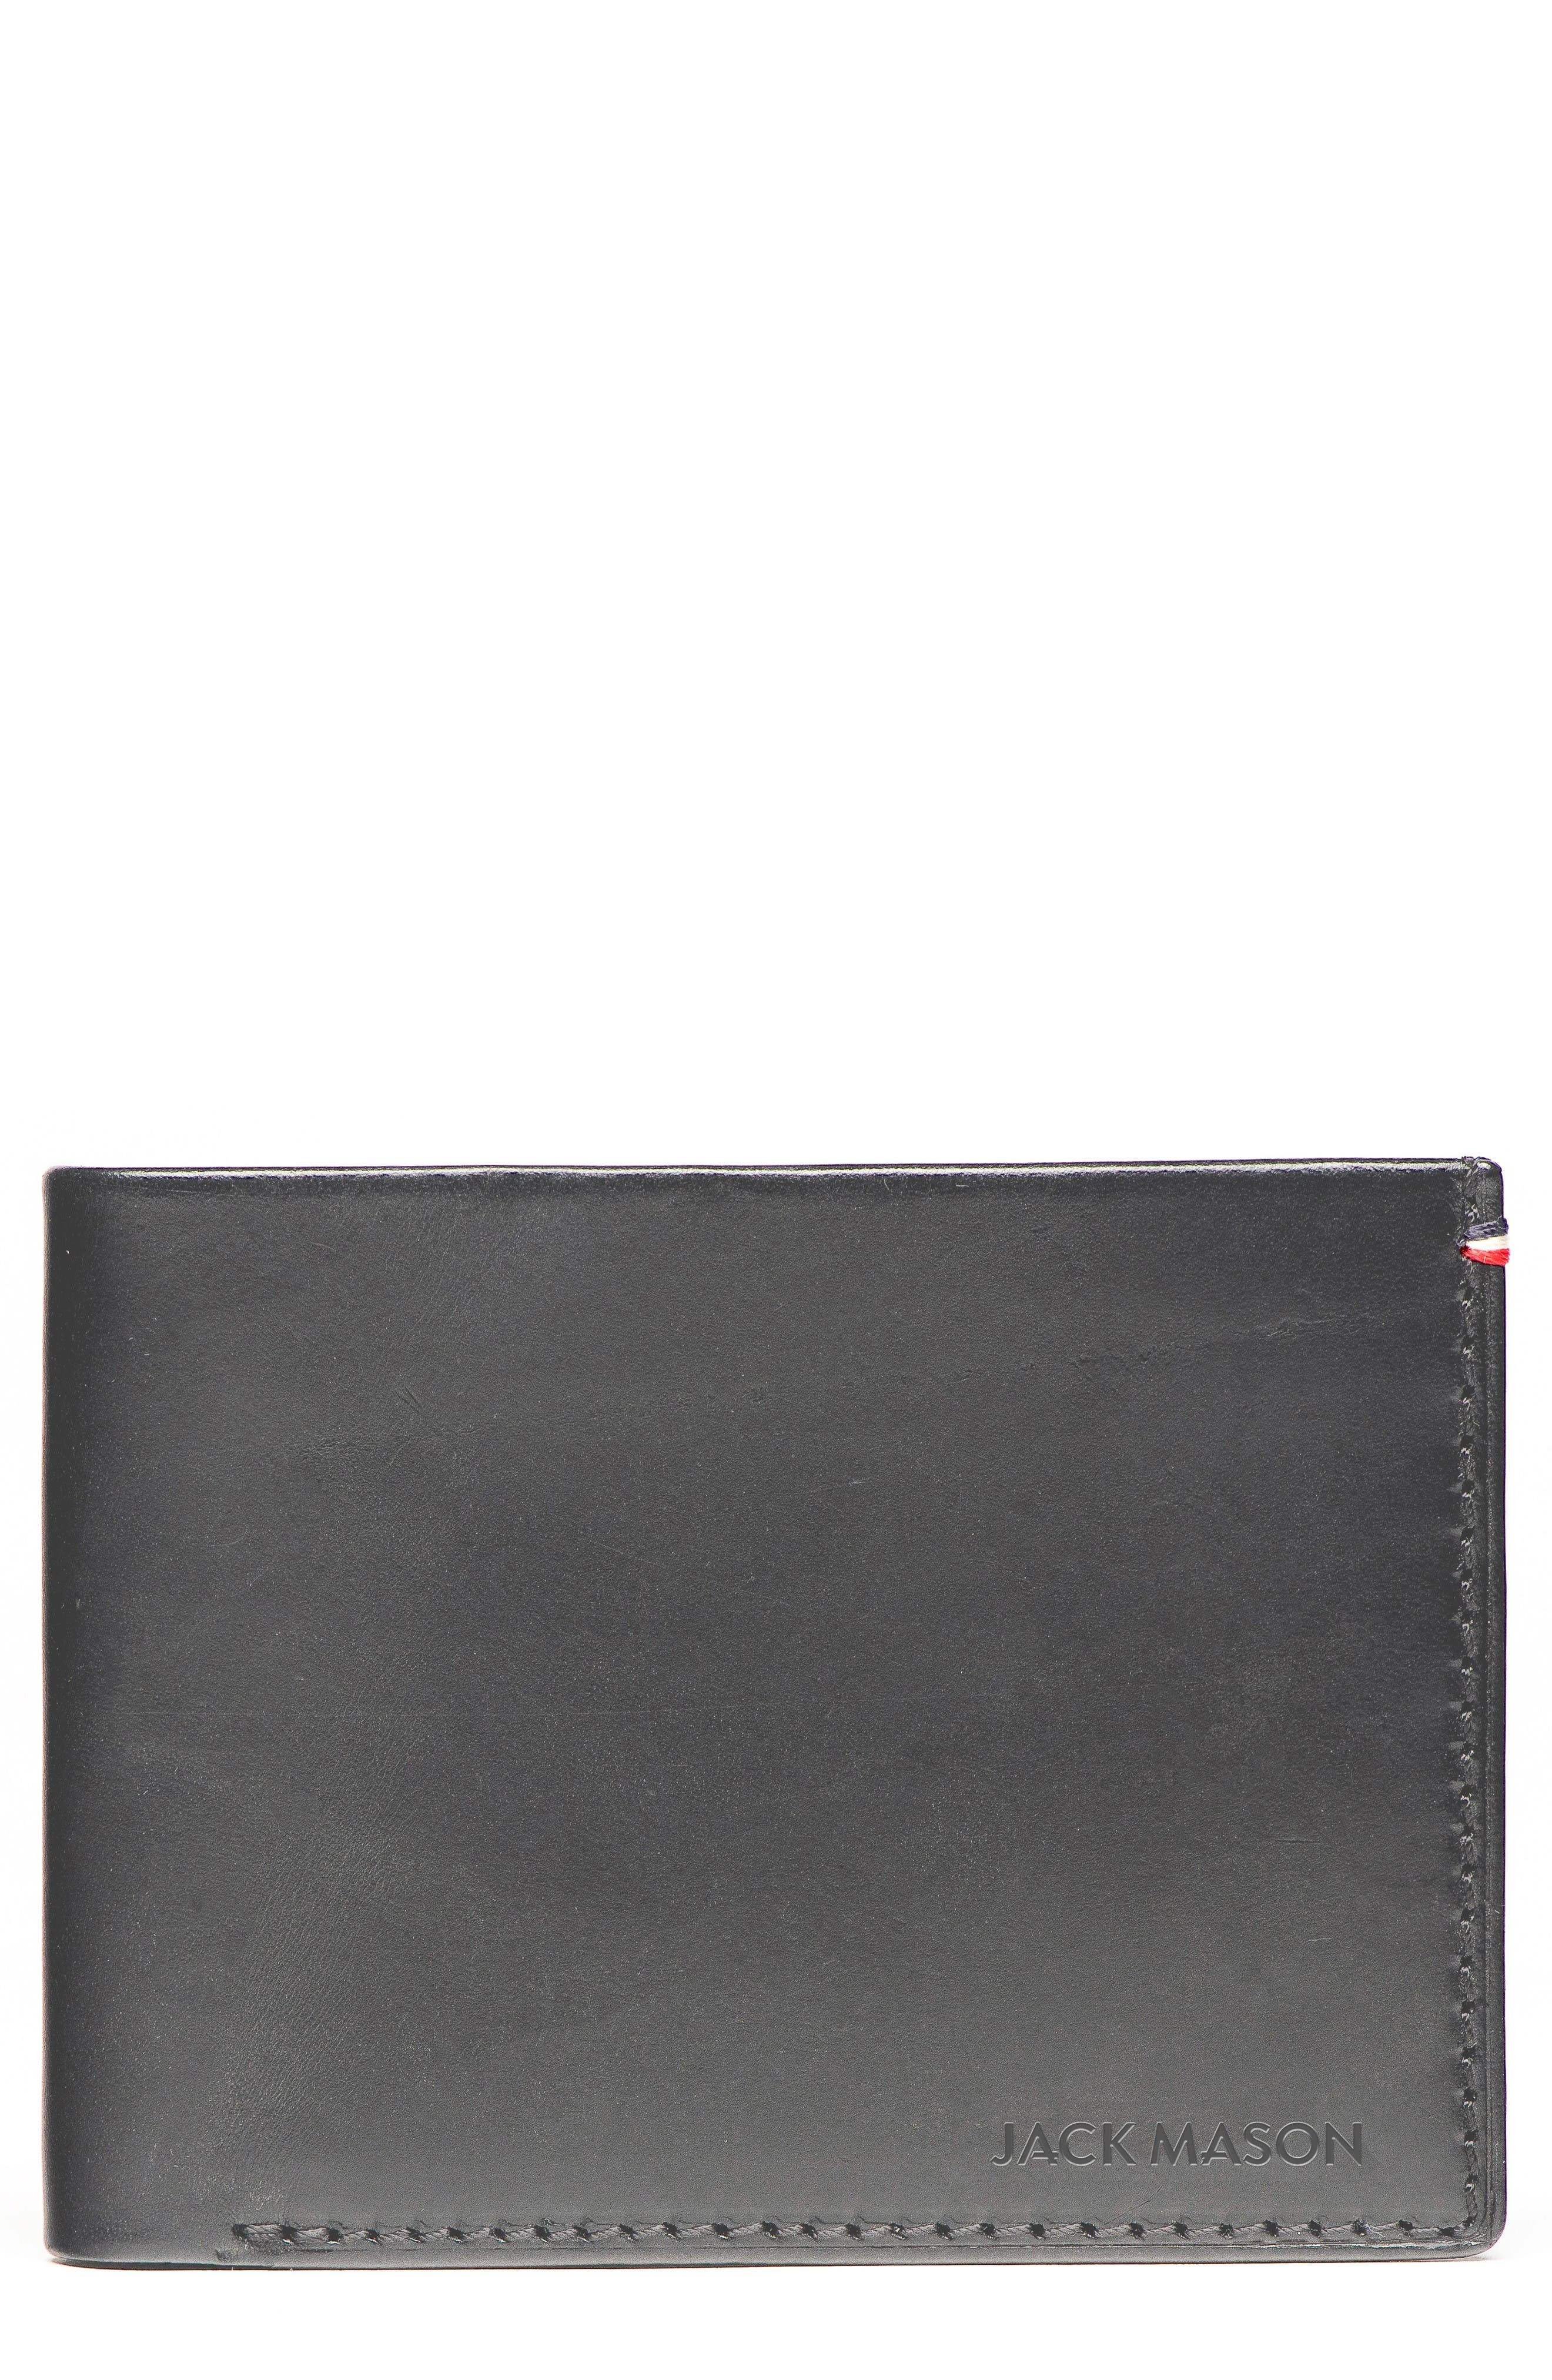 Jack Mason Lux Leather Wallet